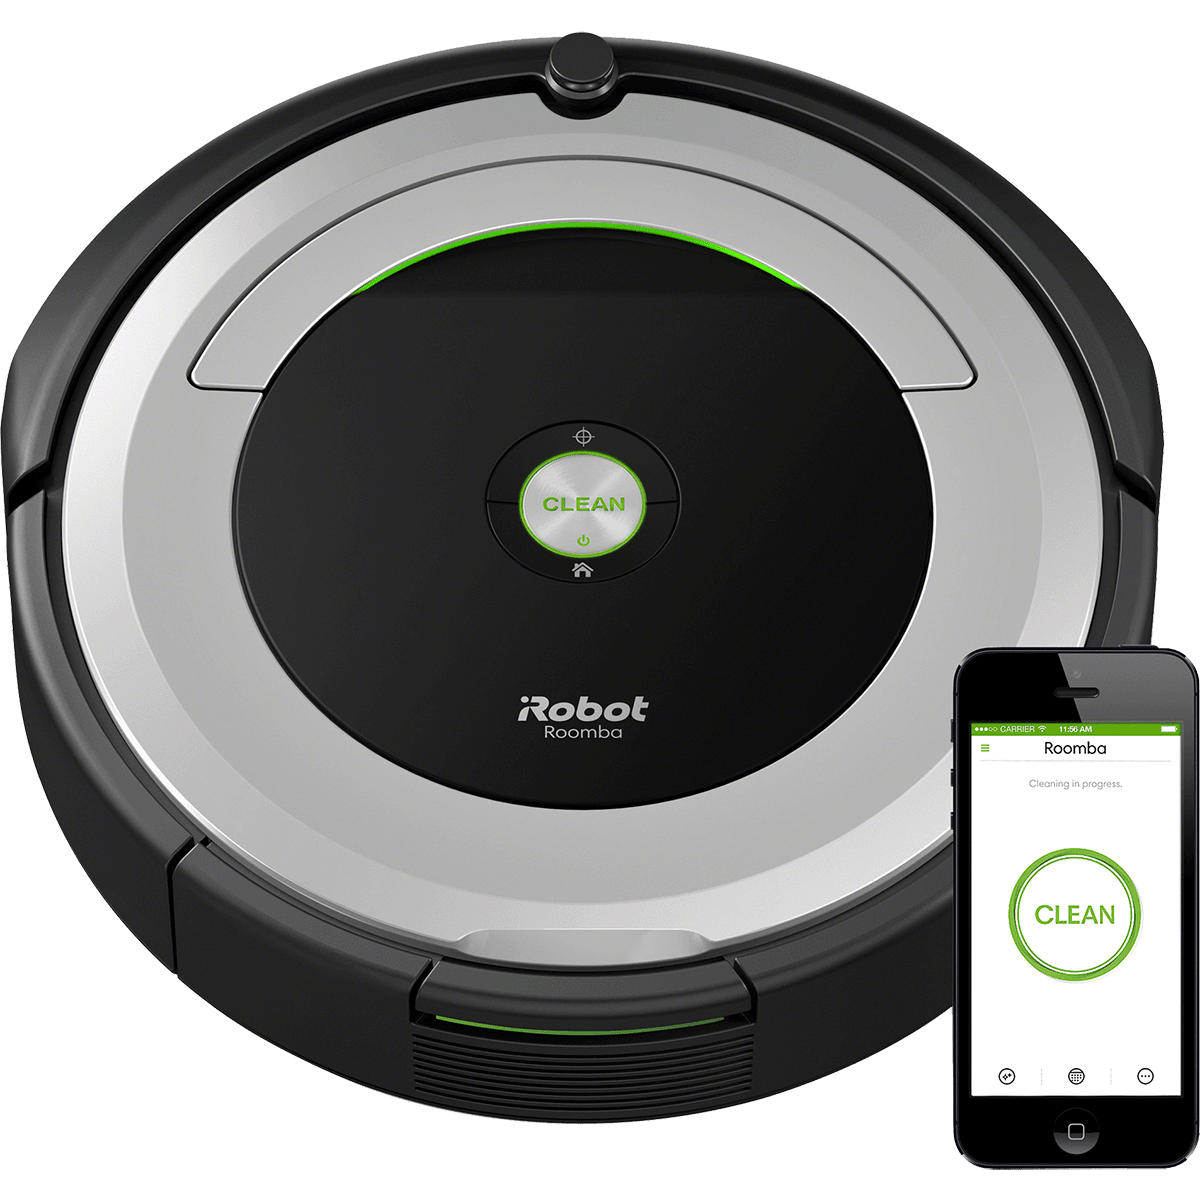 iRobot Roomba 690 Wifi Connected Robot Vacuum | Sylvane